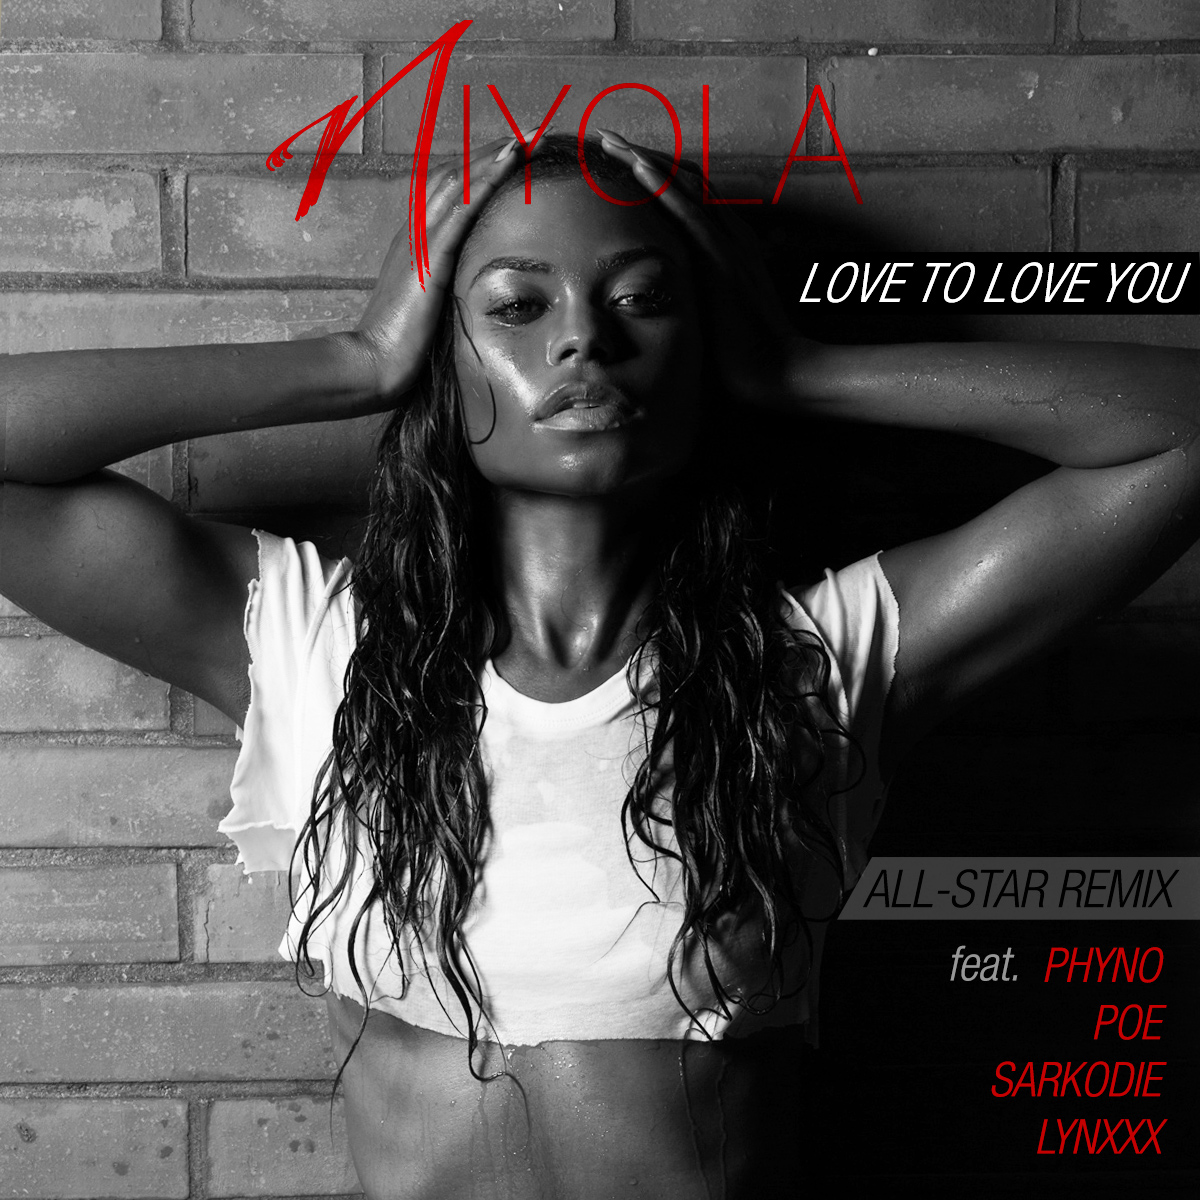 Niyola Artwork - Love To Love You Remix ft. Phyno, Sarkodie, Lynxxx and Poe